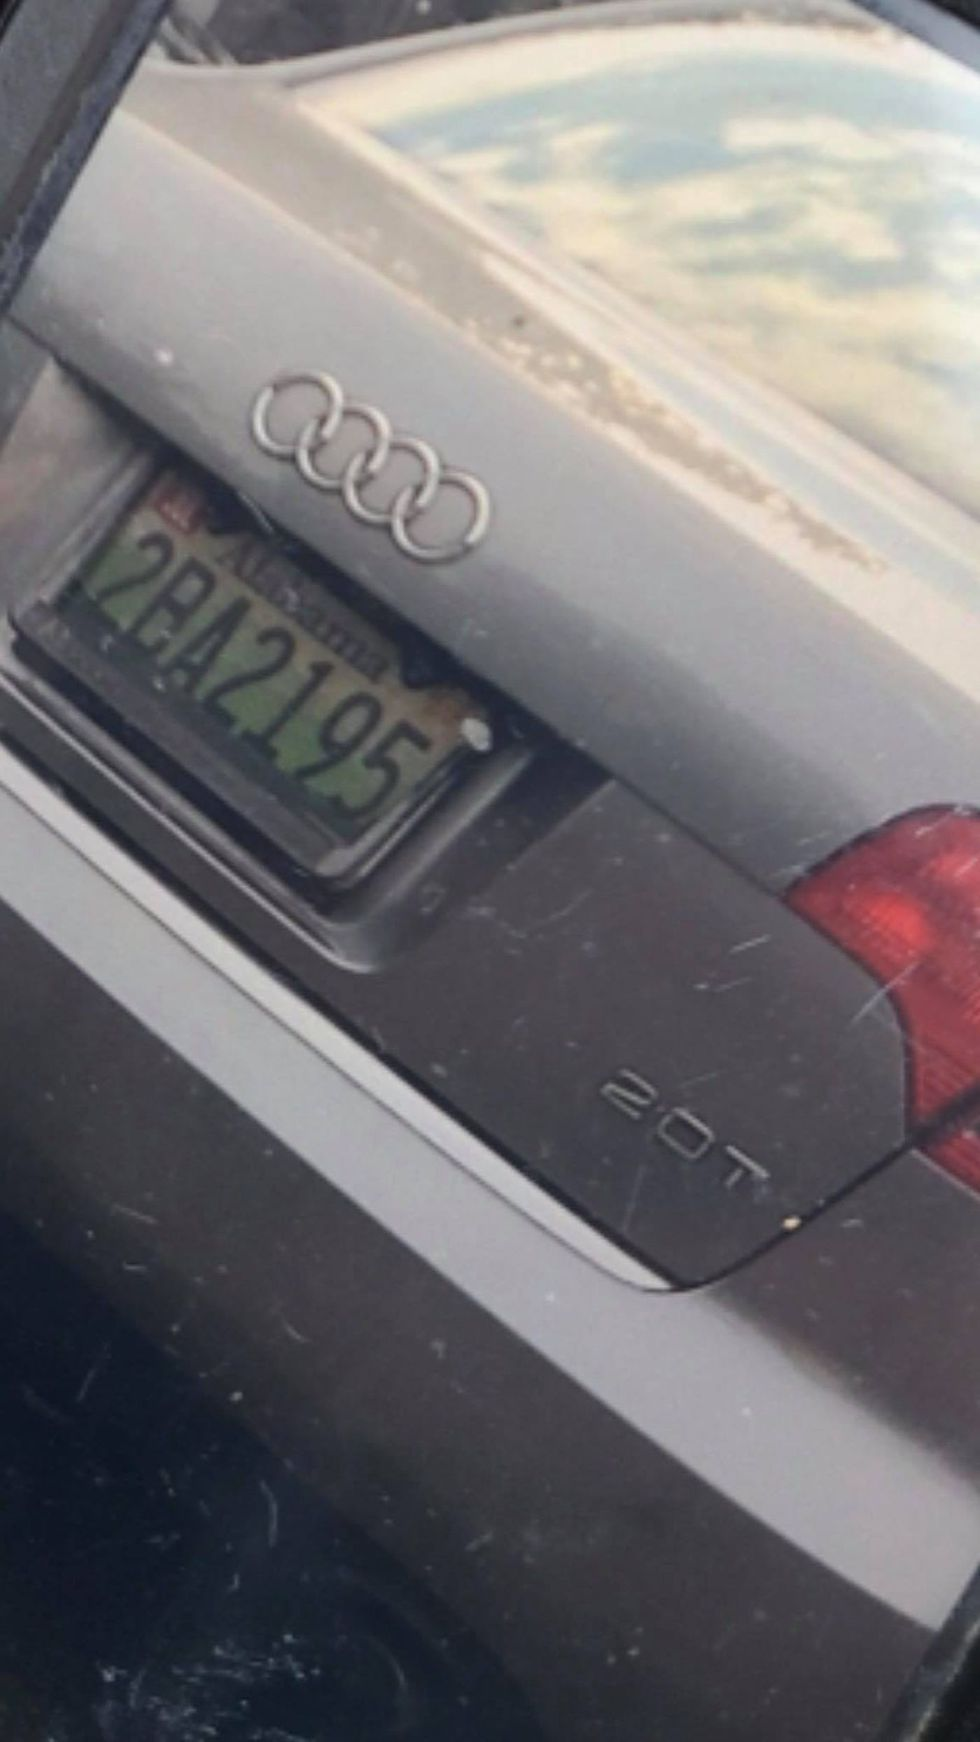 The vehicle being used is a 2007 silver Audi A4 2.0 bearing Alabama license plate 2BA2195.